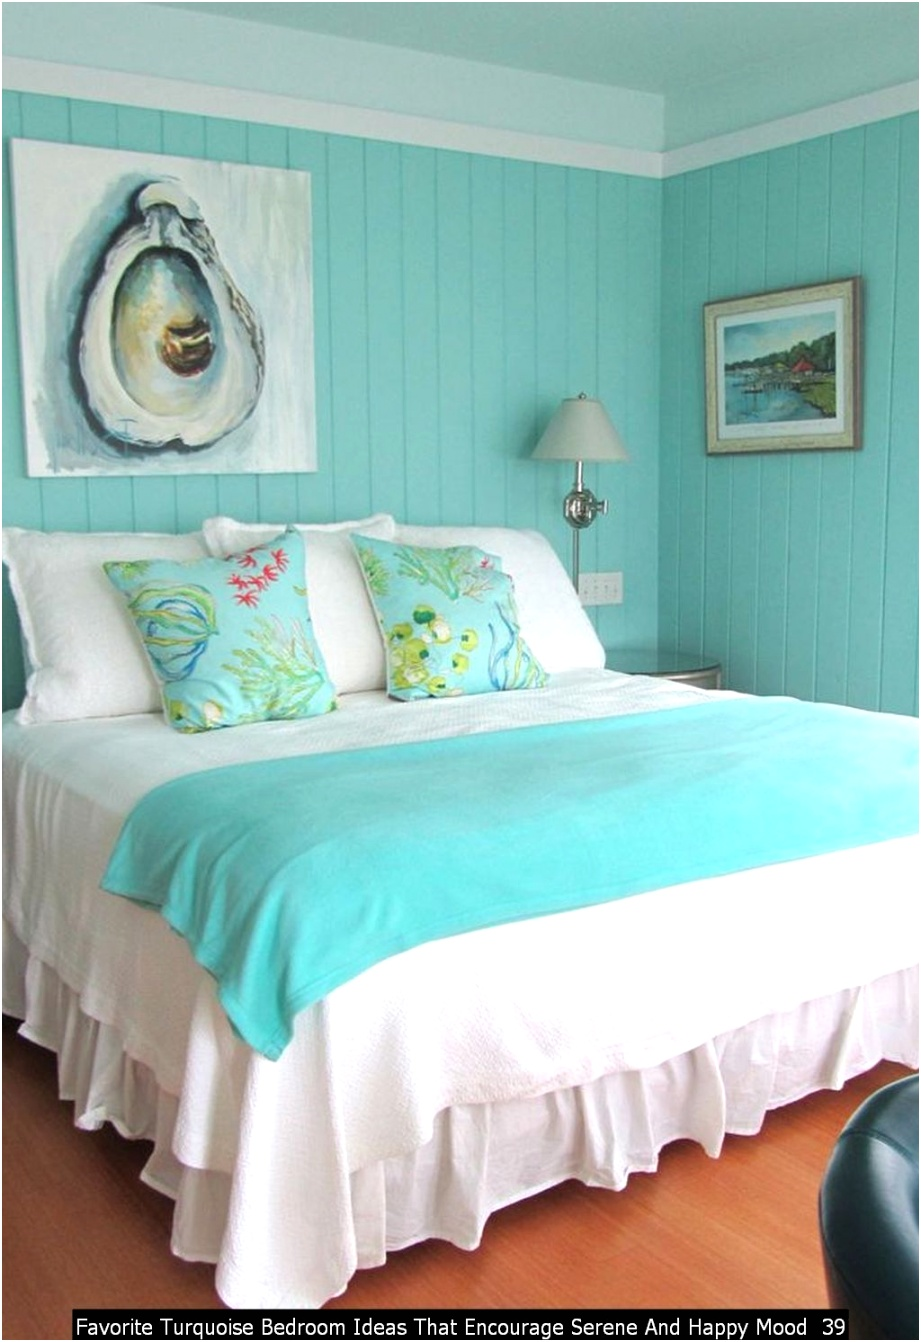 Favorite Turquoise Bedroom Ideas That Encourage Serene And Happy Mood 39